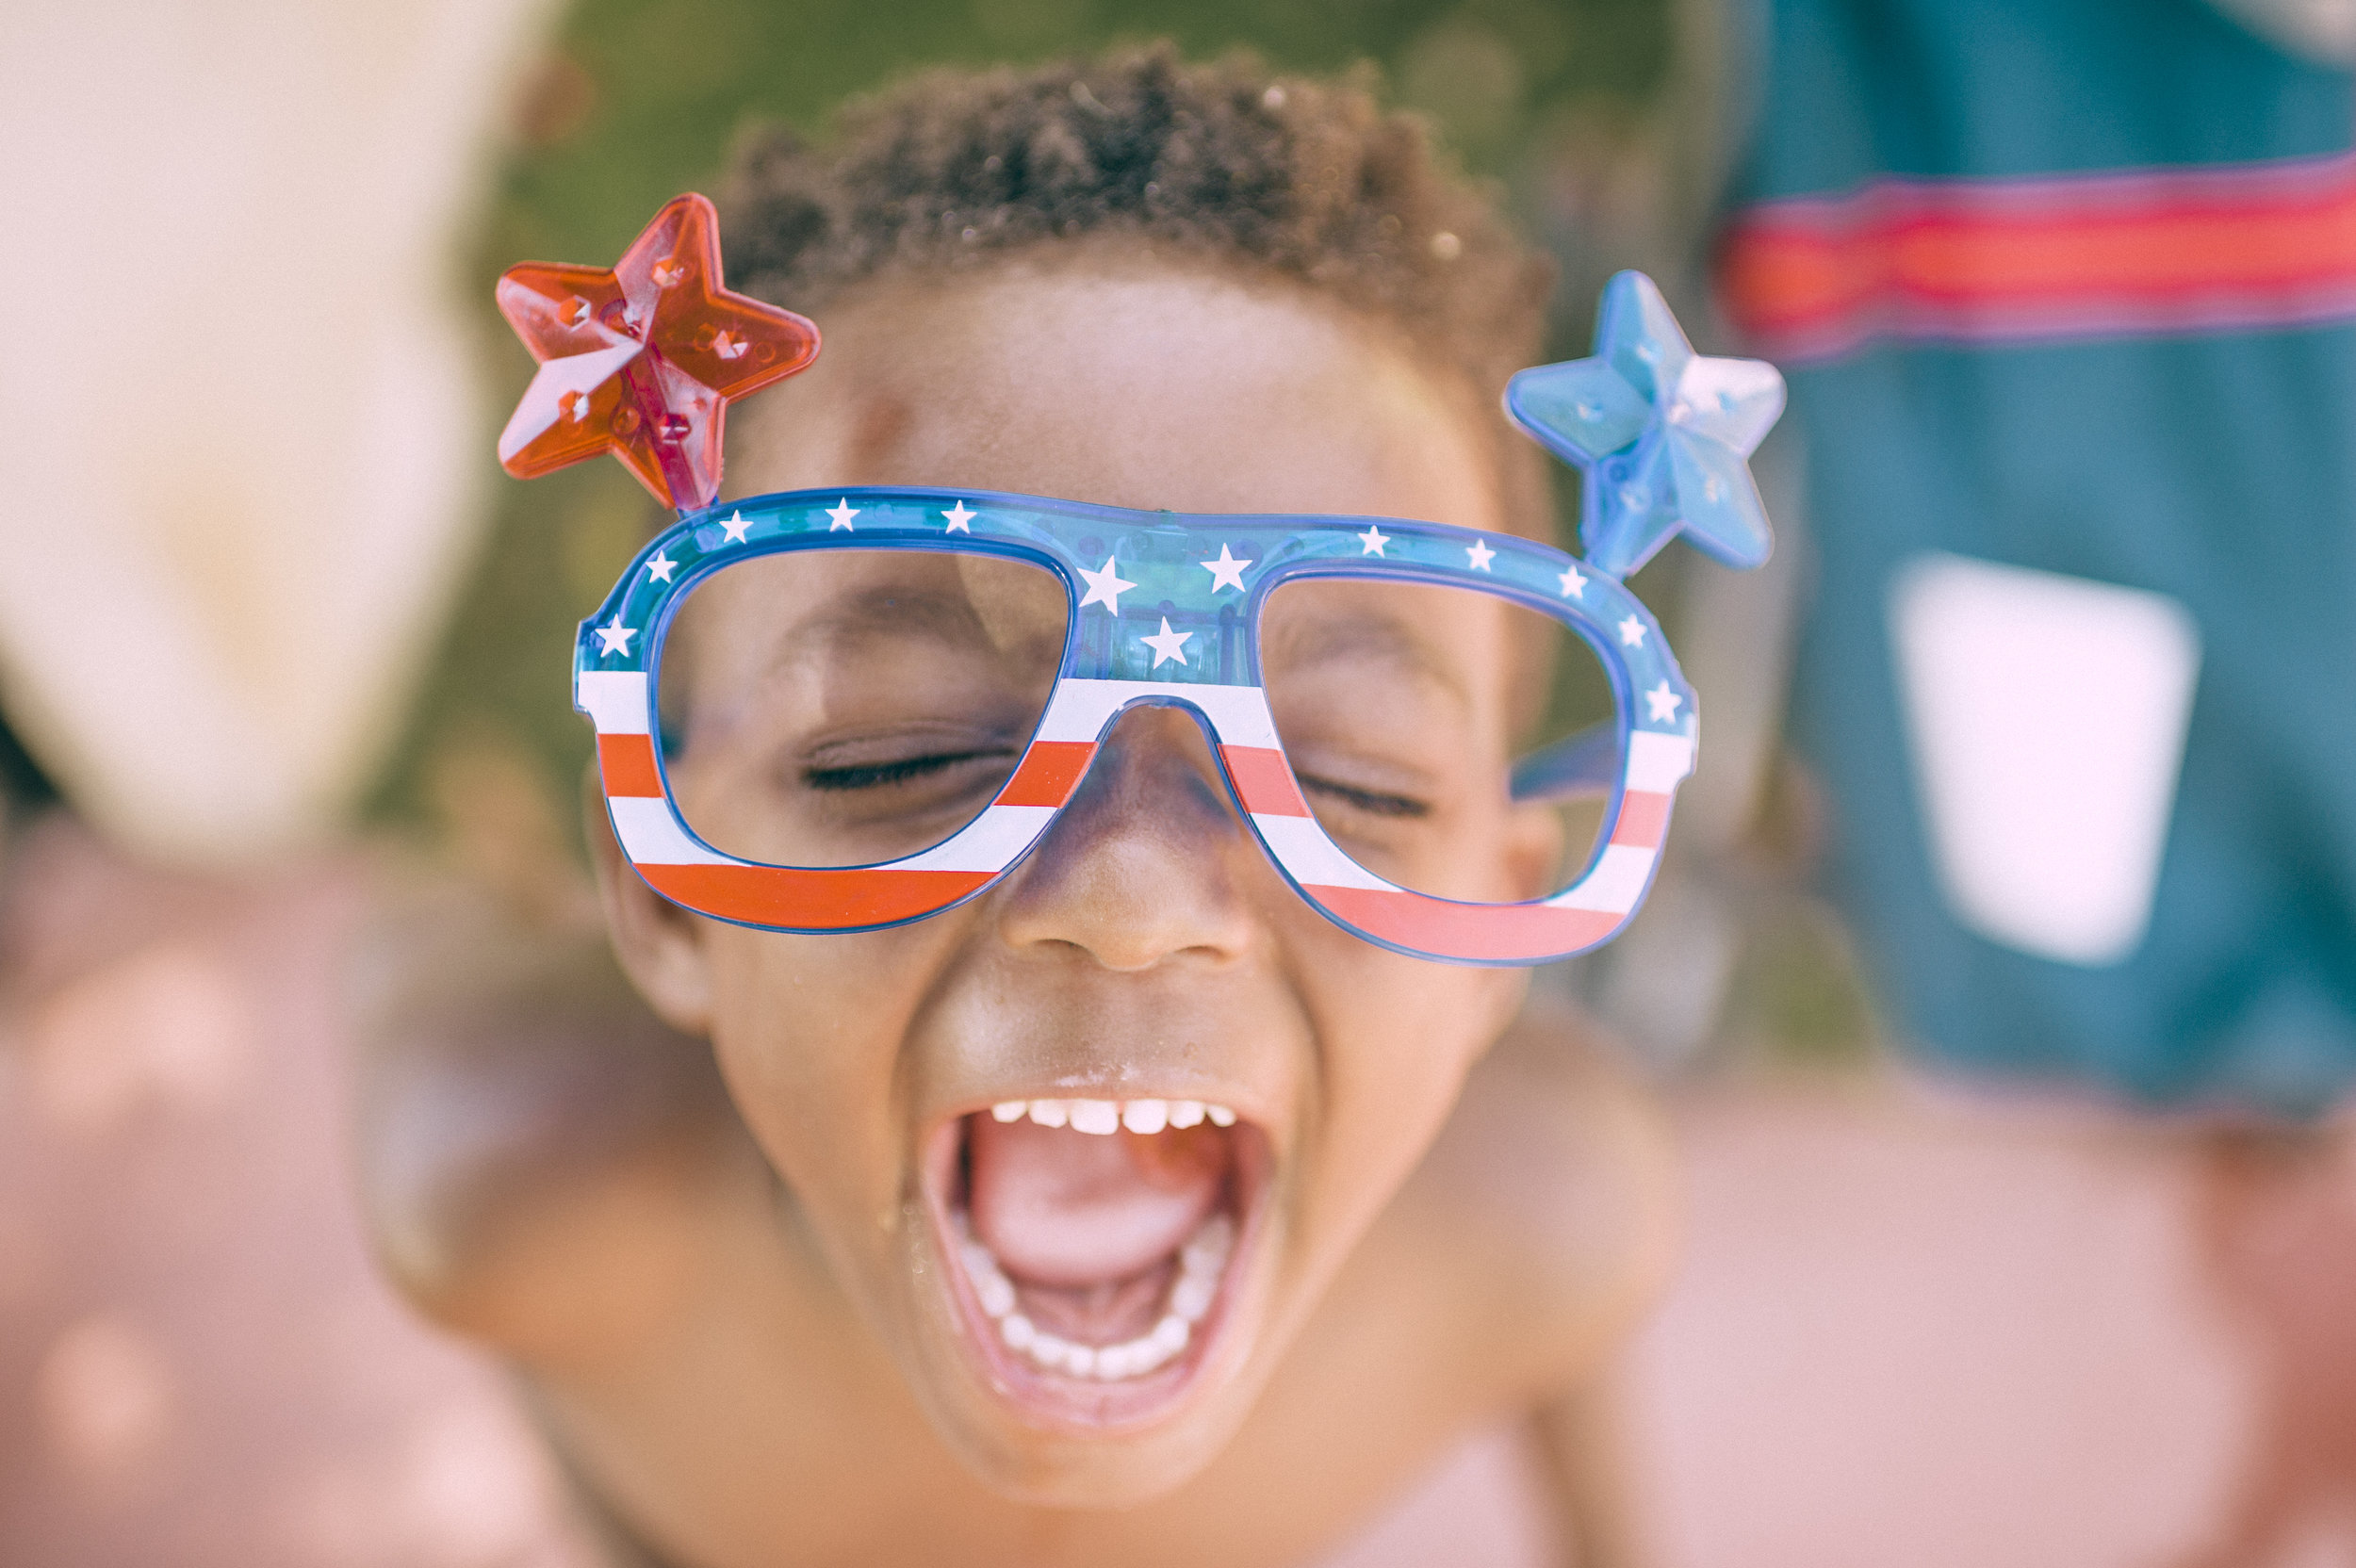 Week 4: America Proud - During the week of July 1-5, we will focus on America's independence through activities and crafts. We'll also take a fun field trip to the observatory!